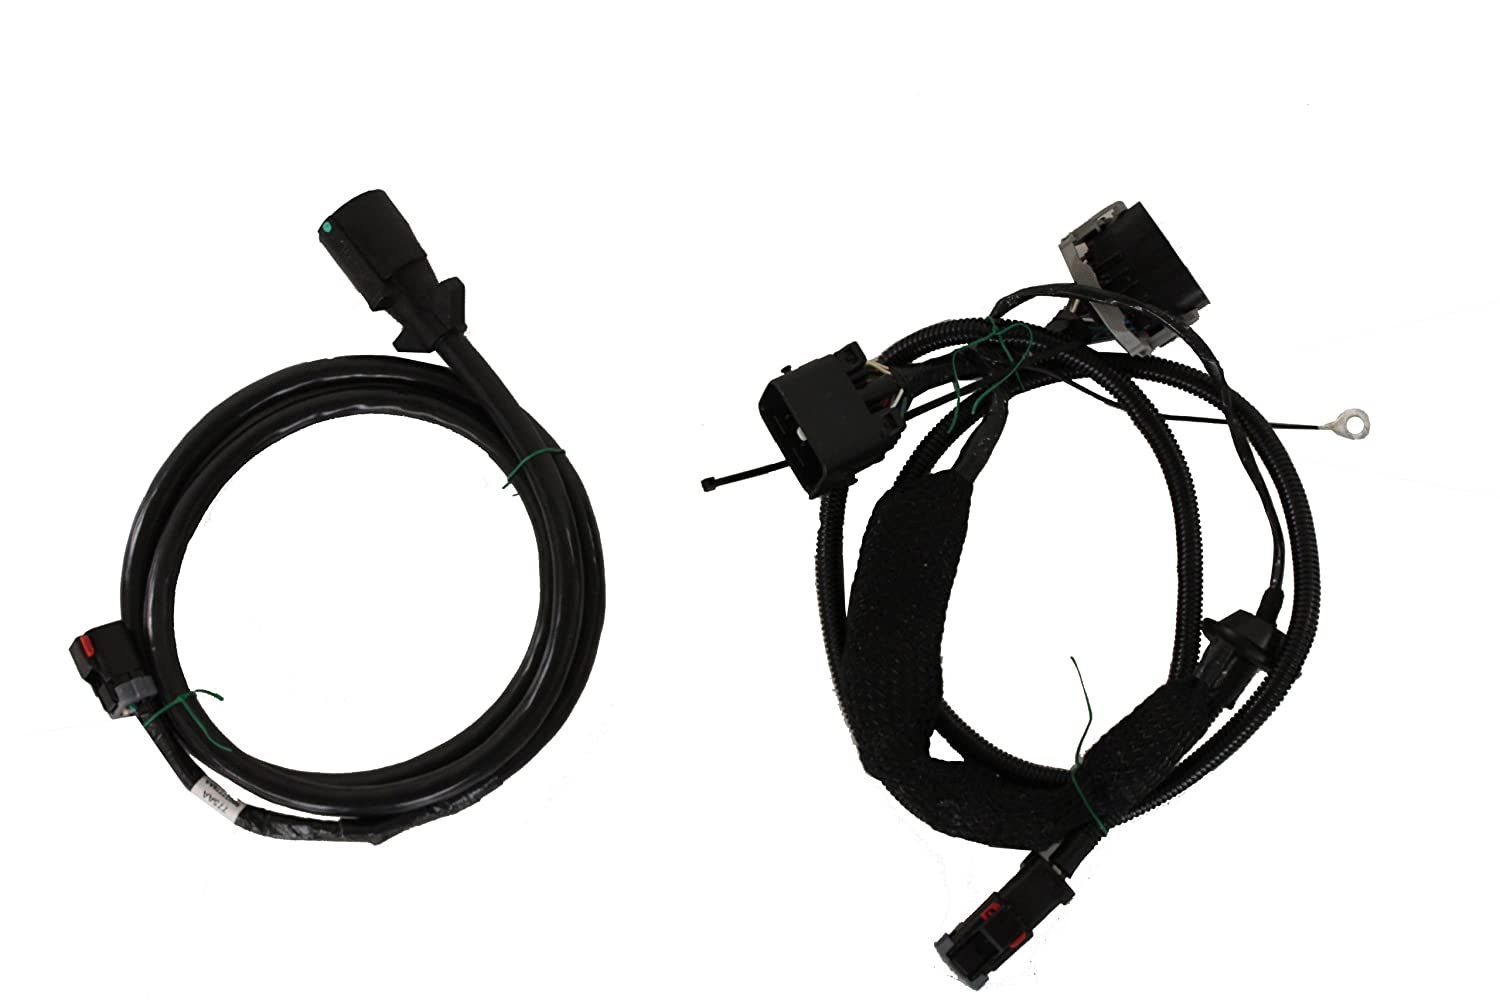 71x 3dYH2ML._SL1500_ amazon com 2007 2013 jeep wrangler tow vehicle wiring harness wiring harness for towing a jeep at gsmx.co